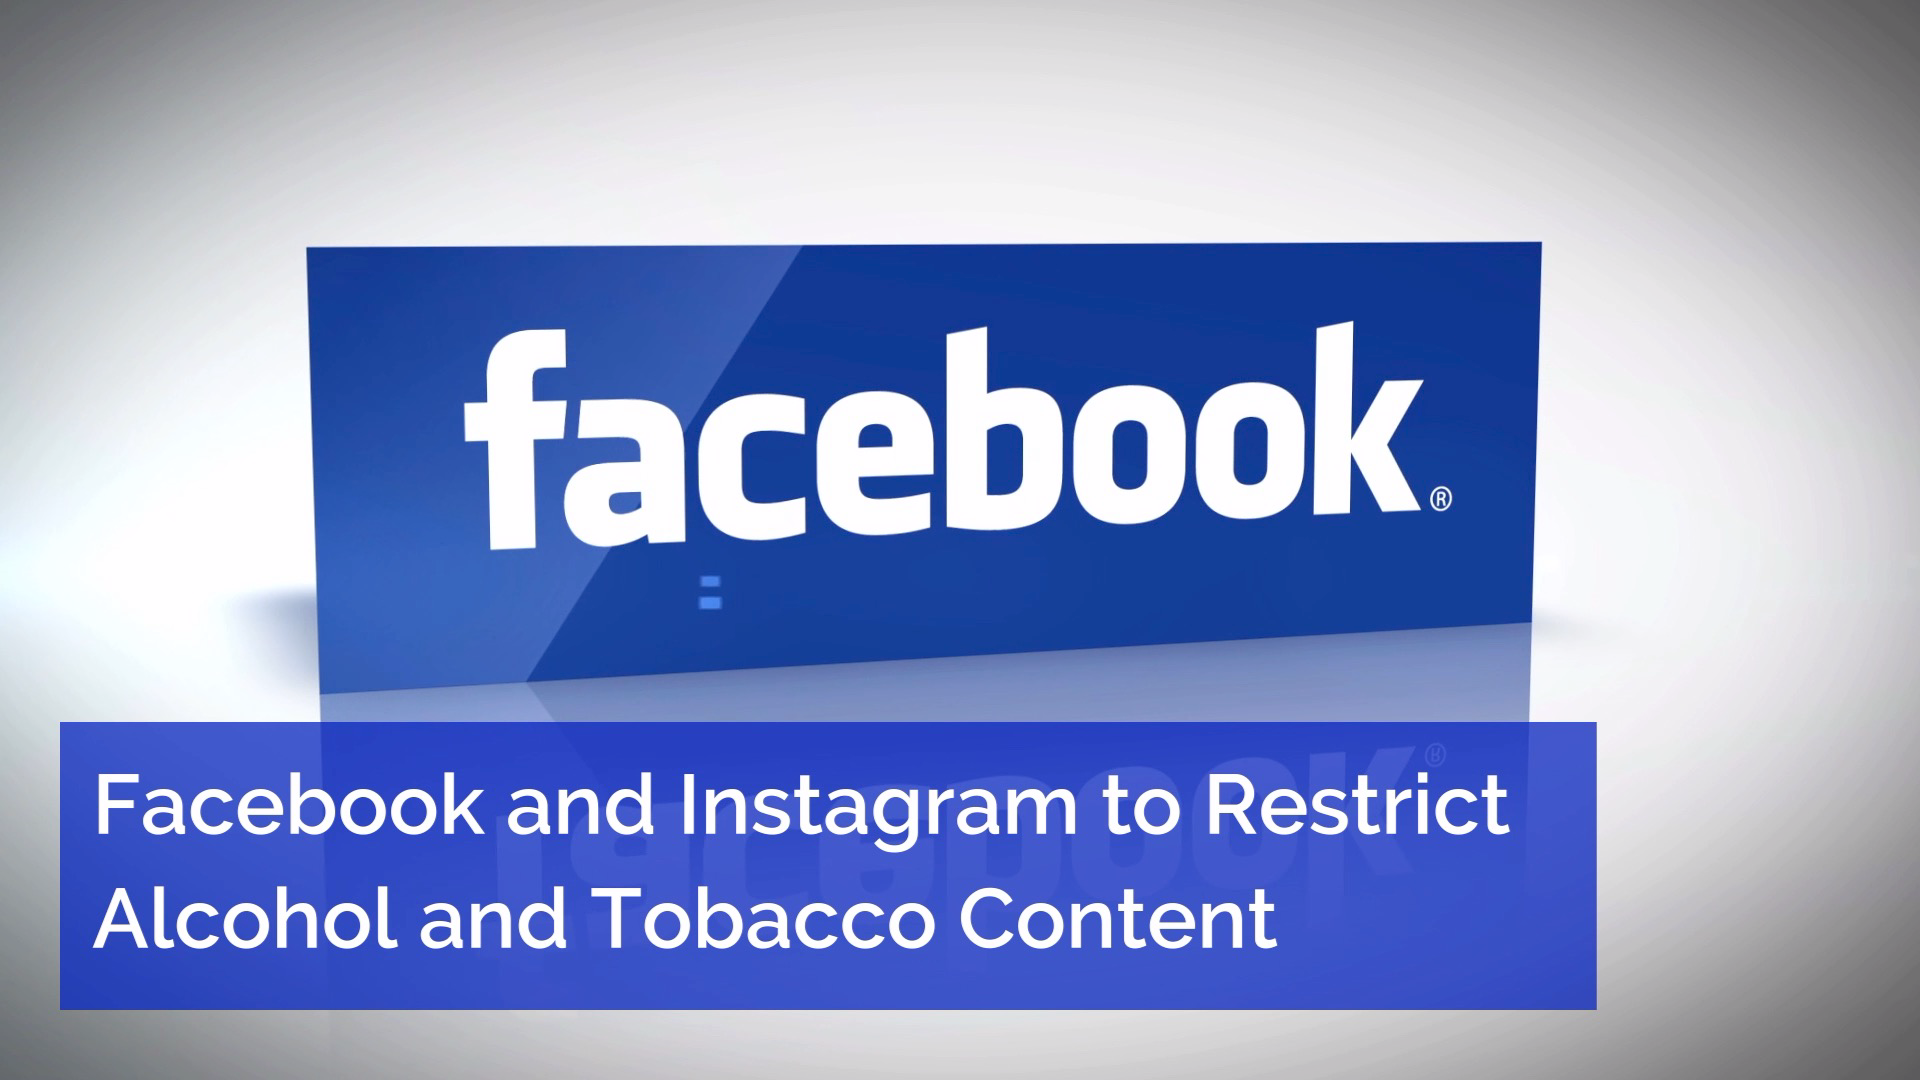 Facebook Doesn't Want To See Content Related To Tobacco And Alcohol